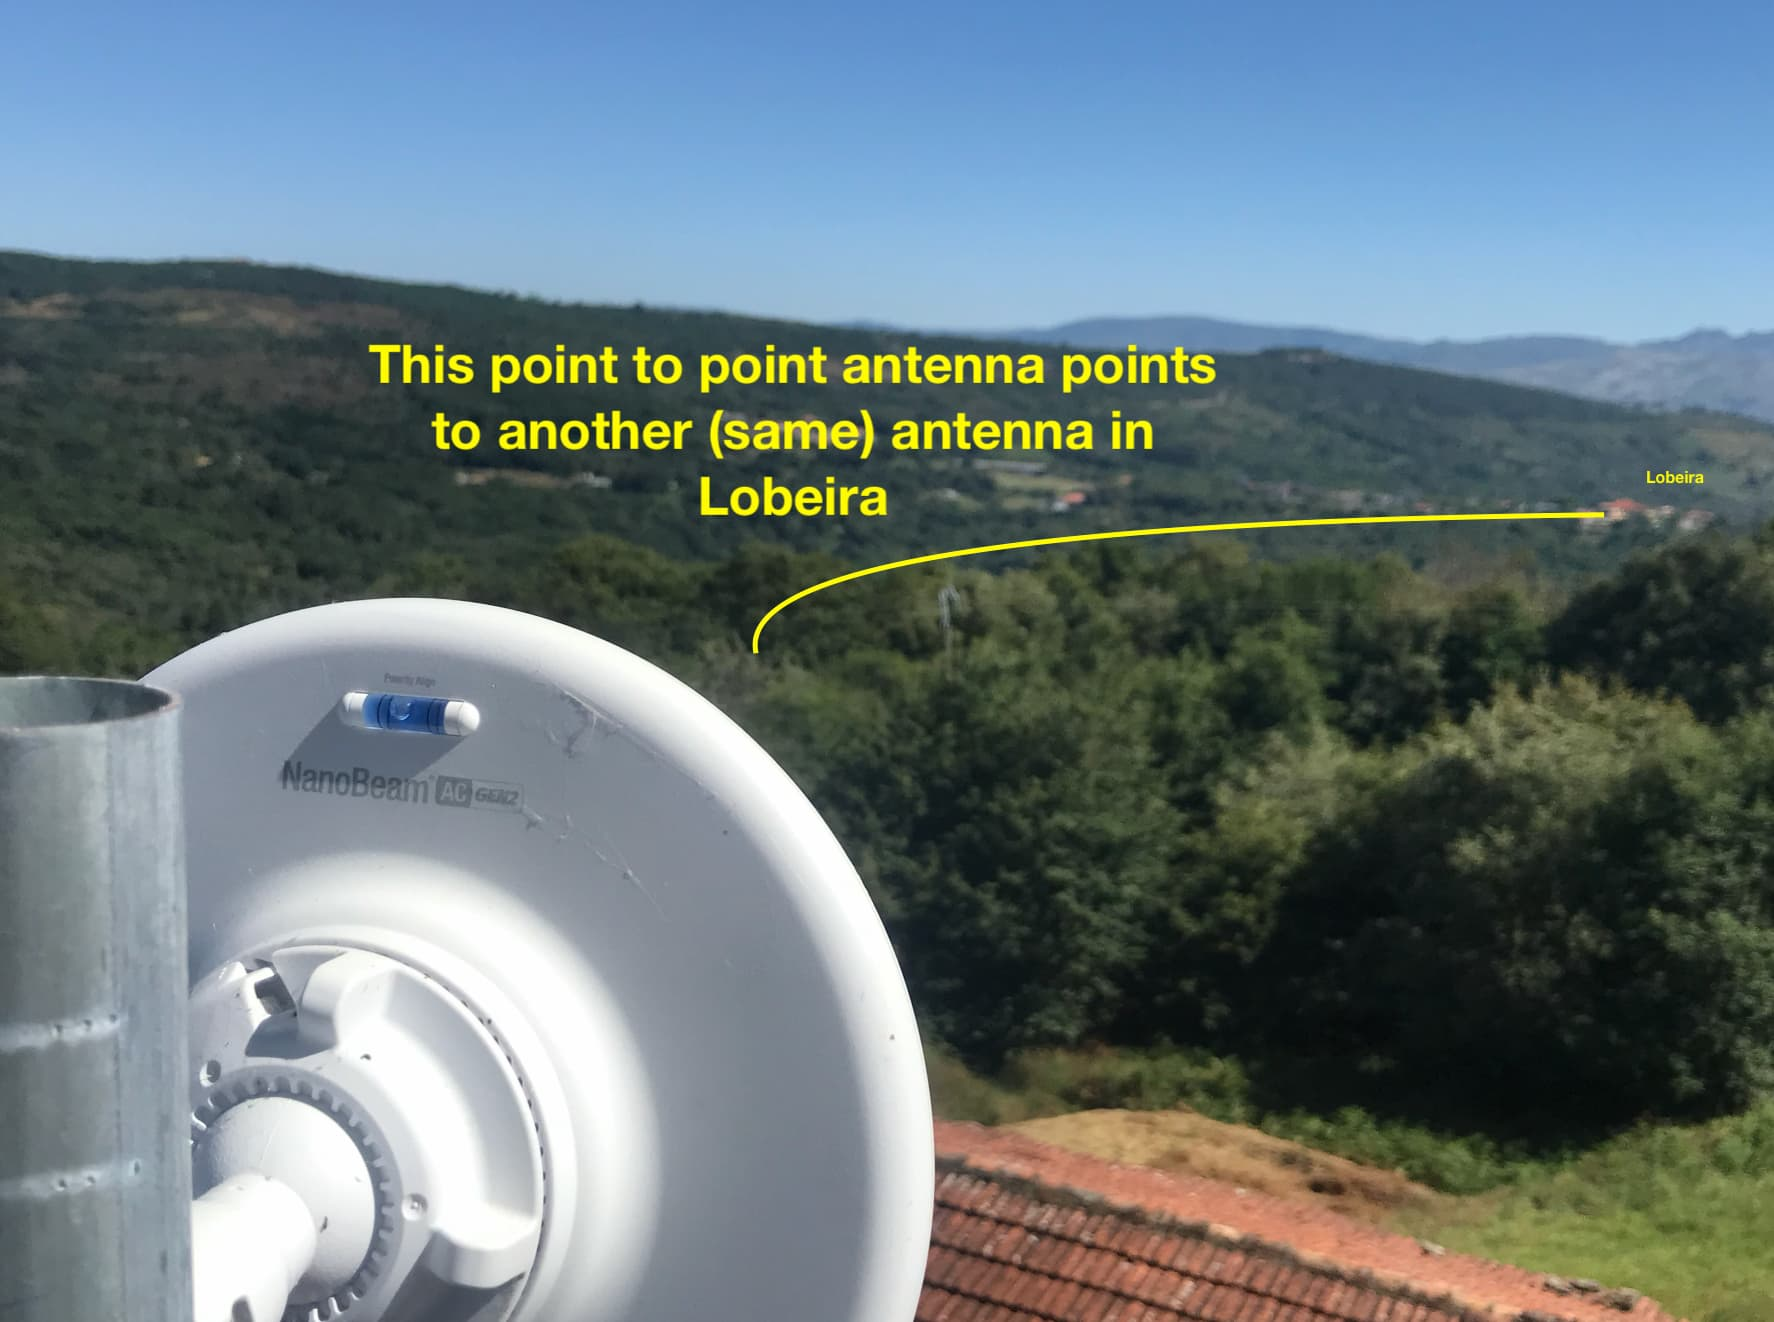 Photo of our point to point antenna which points to anoher antenna in Lobeira